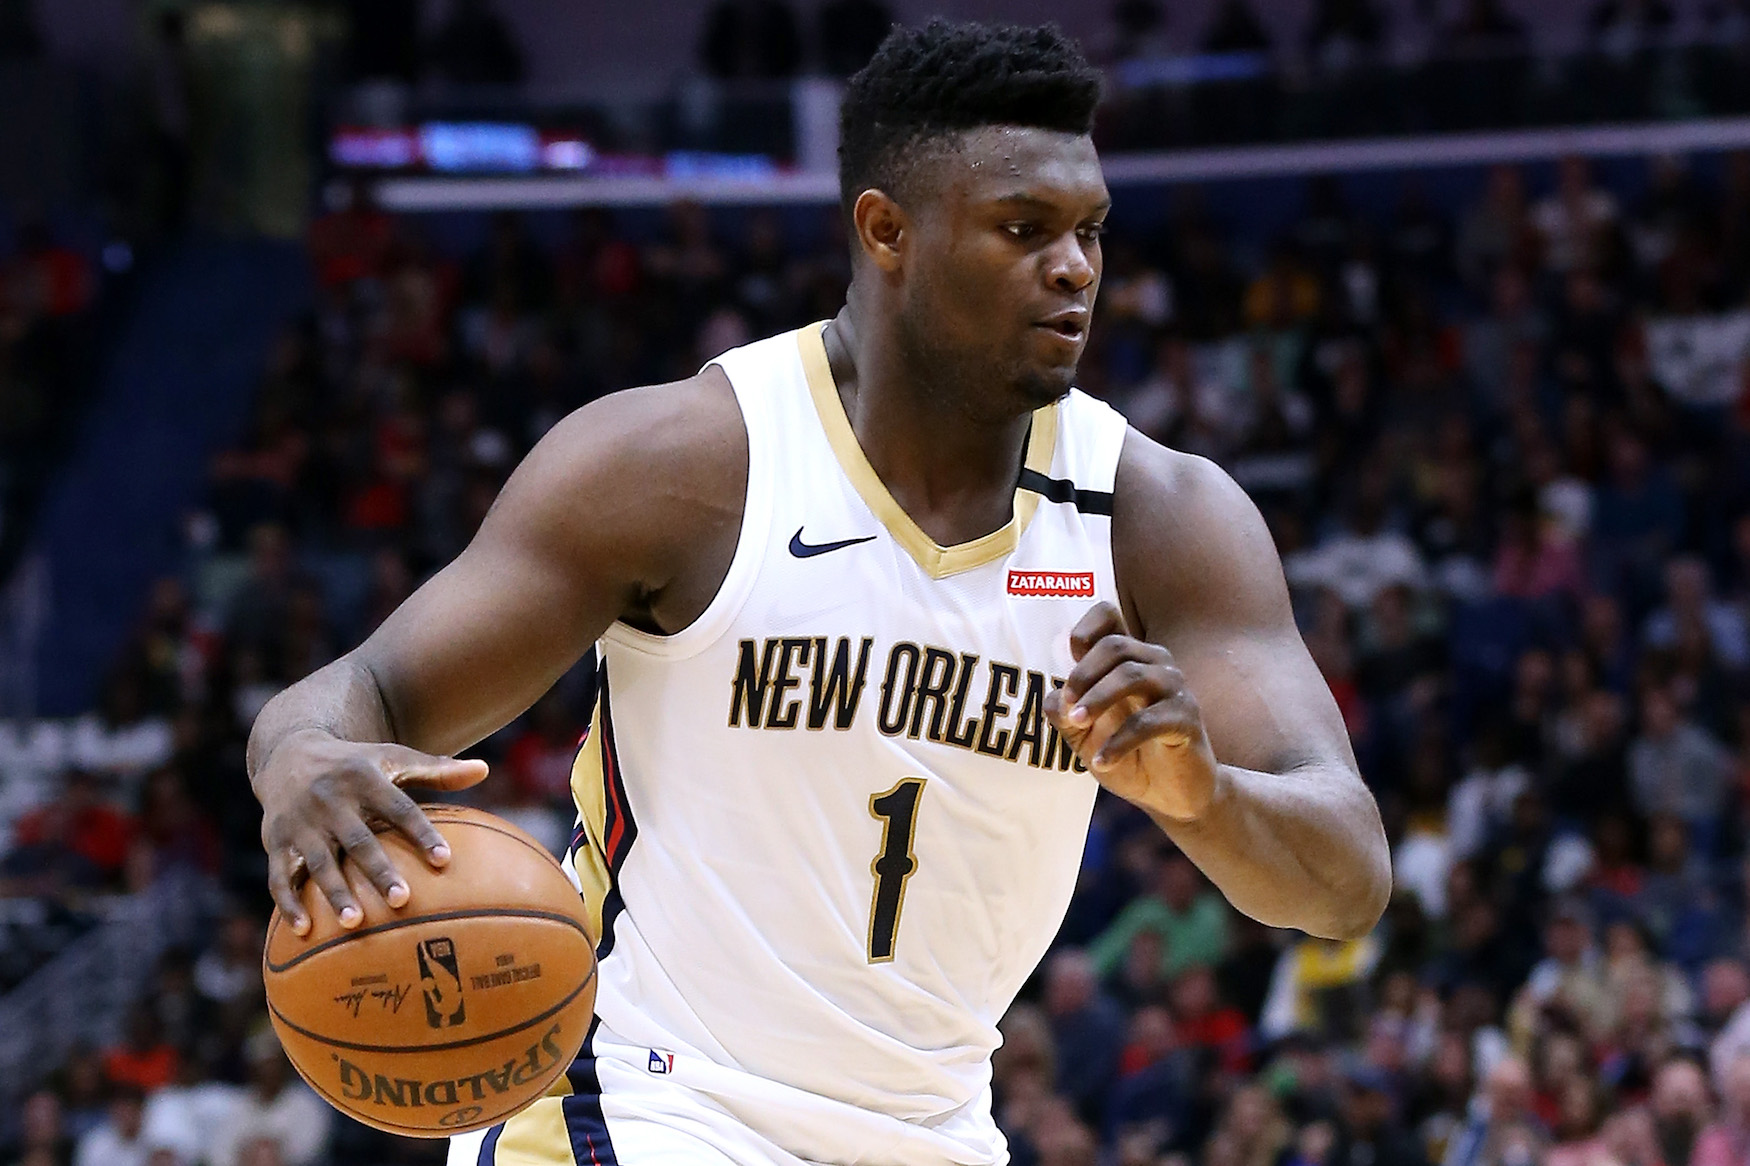 What is Zion Williamson's height, weight, and wingspan?